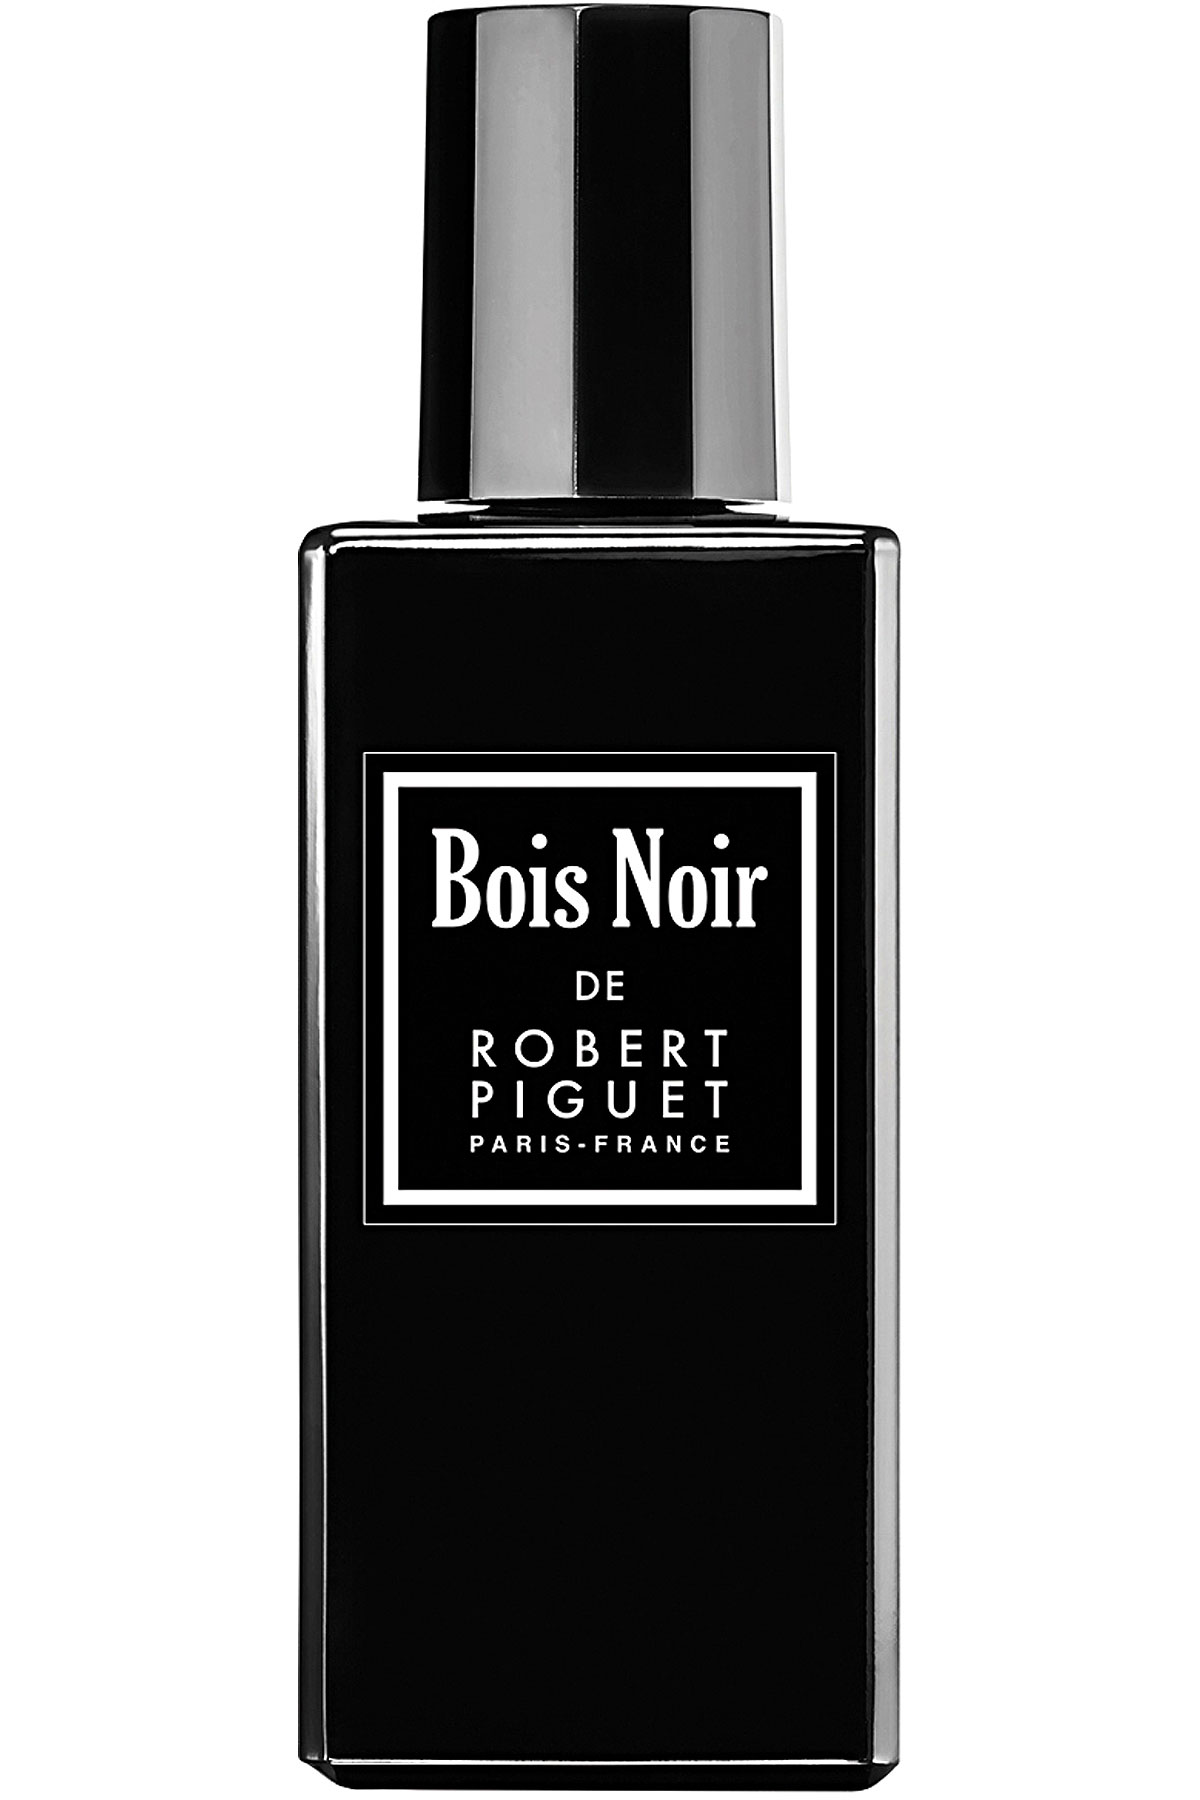 Robert Piguet Fragrances for Men On Sale, Bois Noir - Eau De Parfum - 100 Ml, 2019, 100 ml